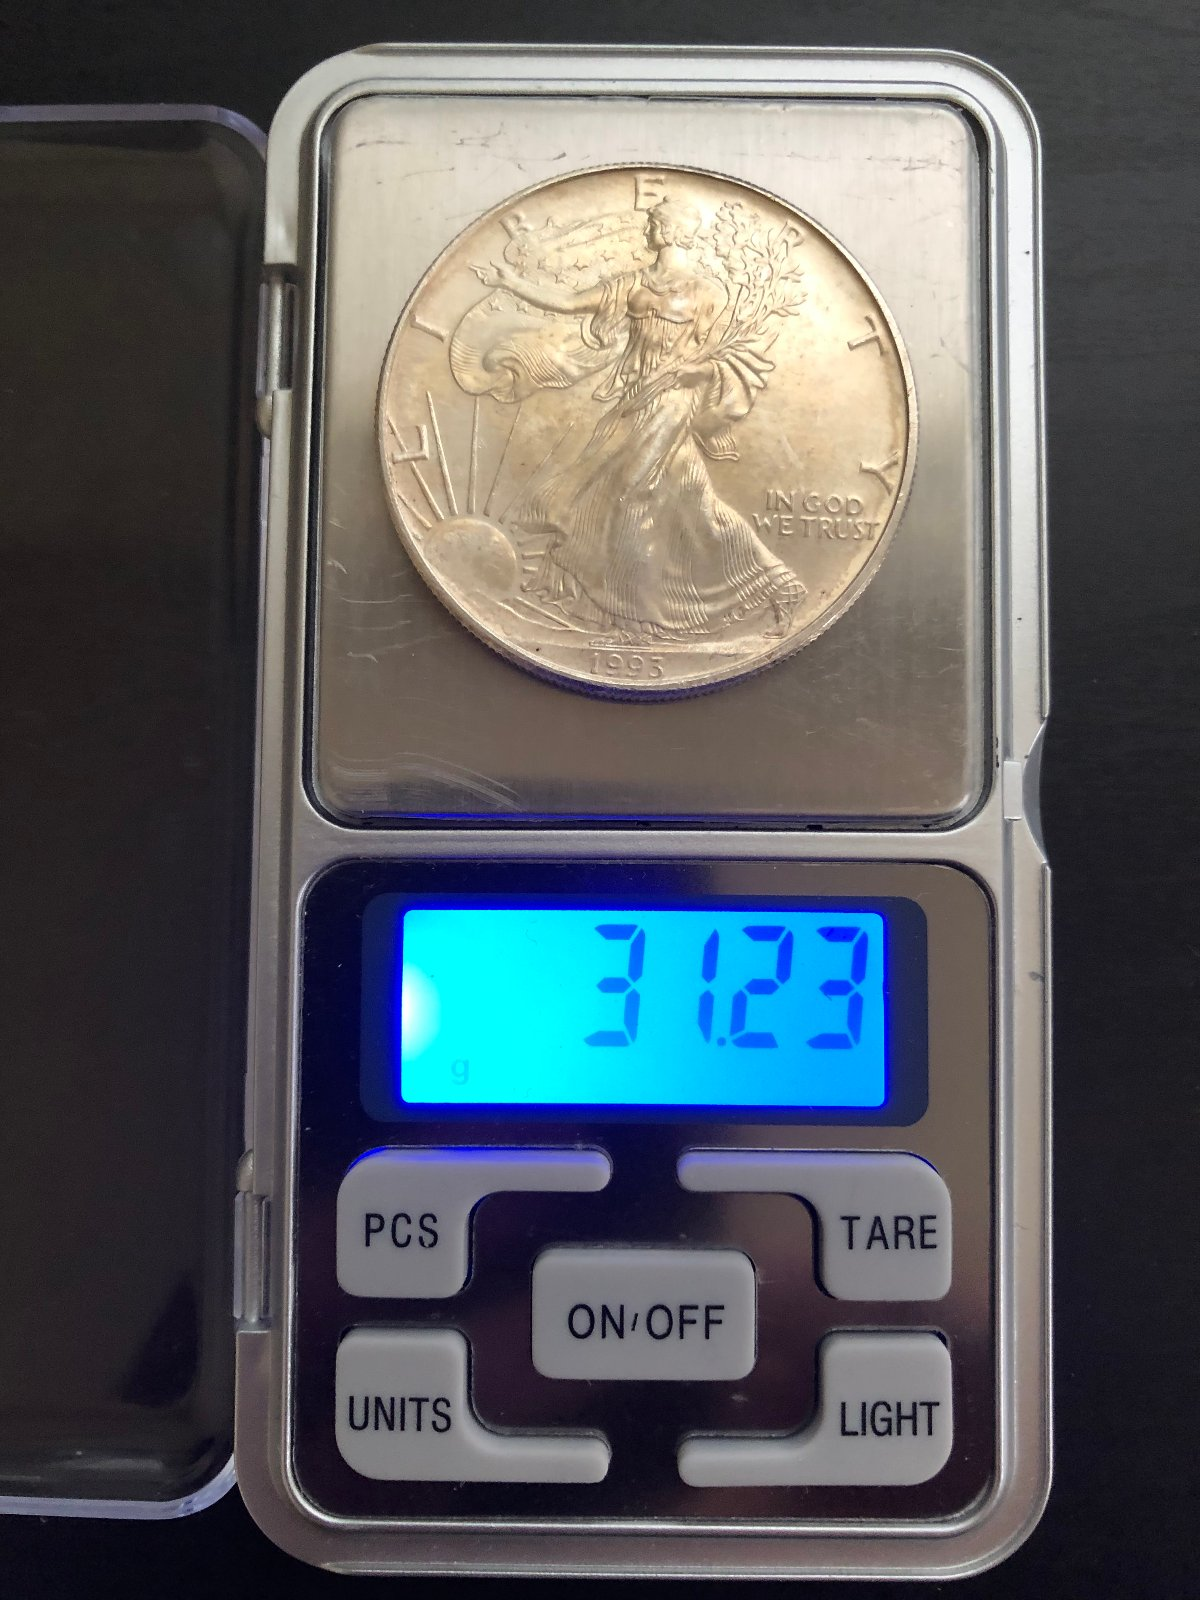 How To Calibrate A Scale With Coins - 3 Ways To Calibrate ...